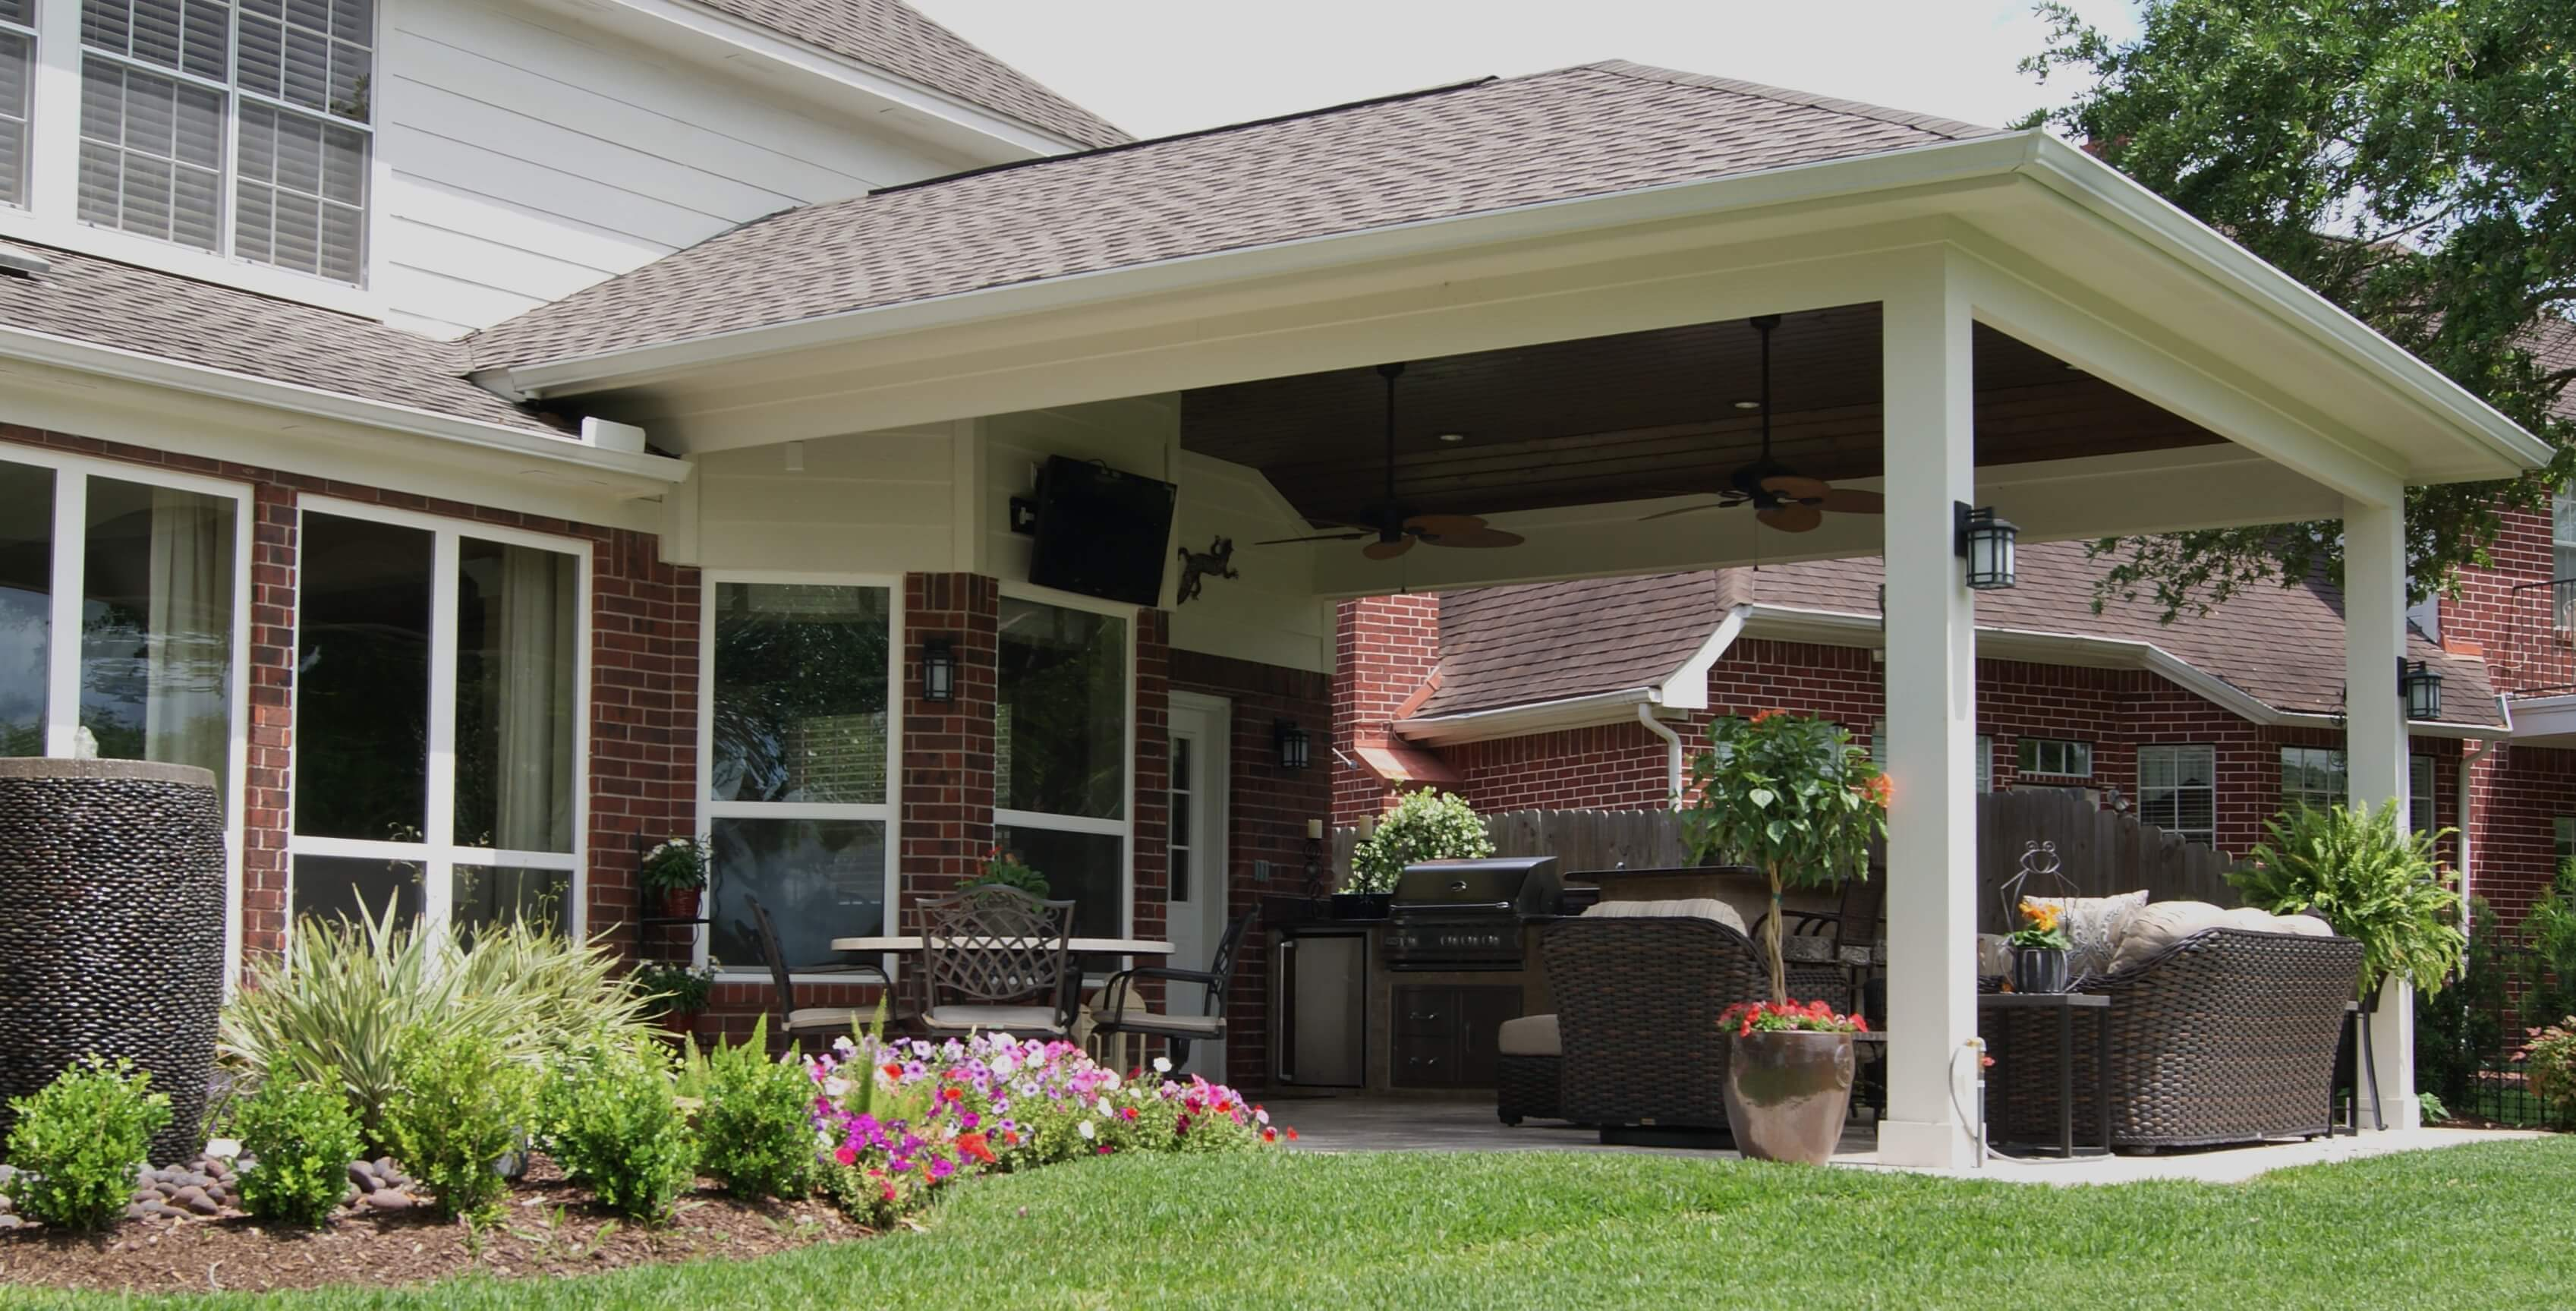 Patio Cover & Outdoor Kitchen In First Colony - Texas ... on Outdoor Kitchen Patio id=90157